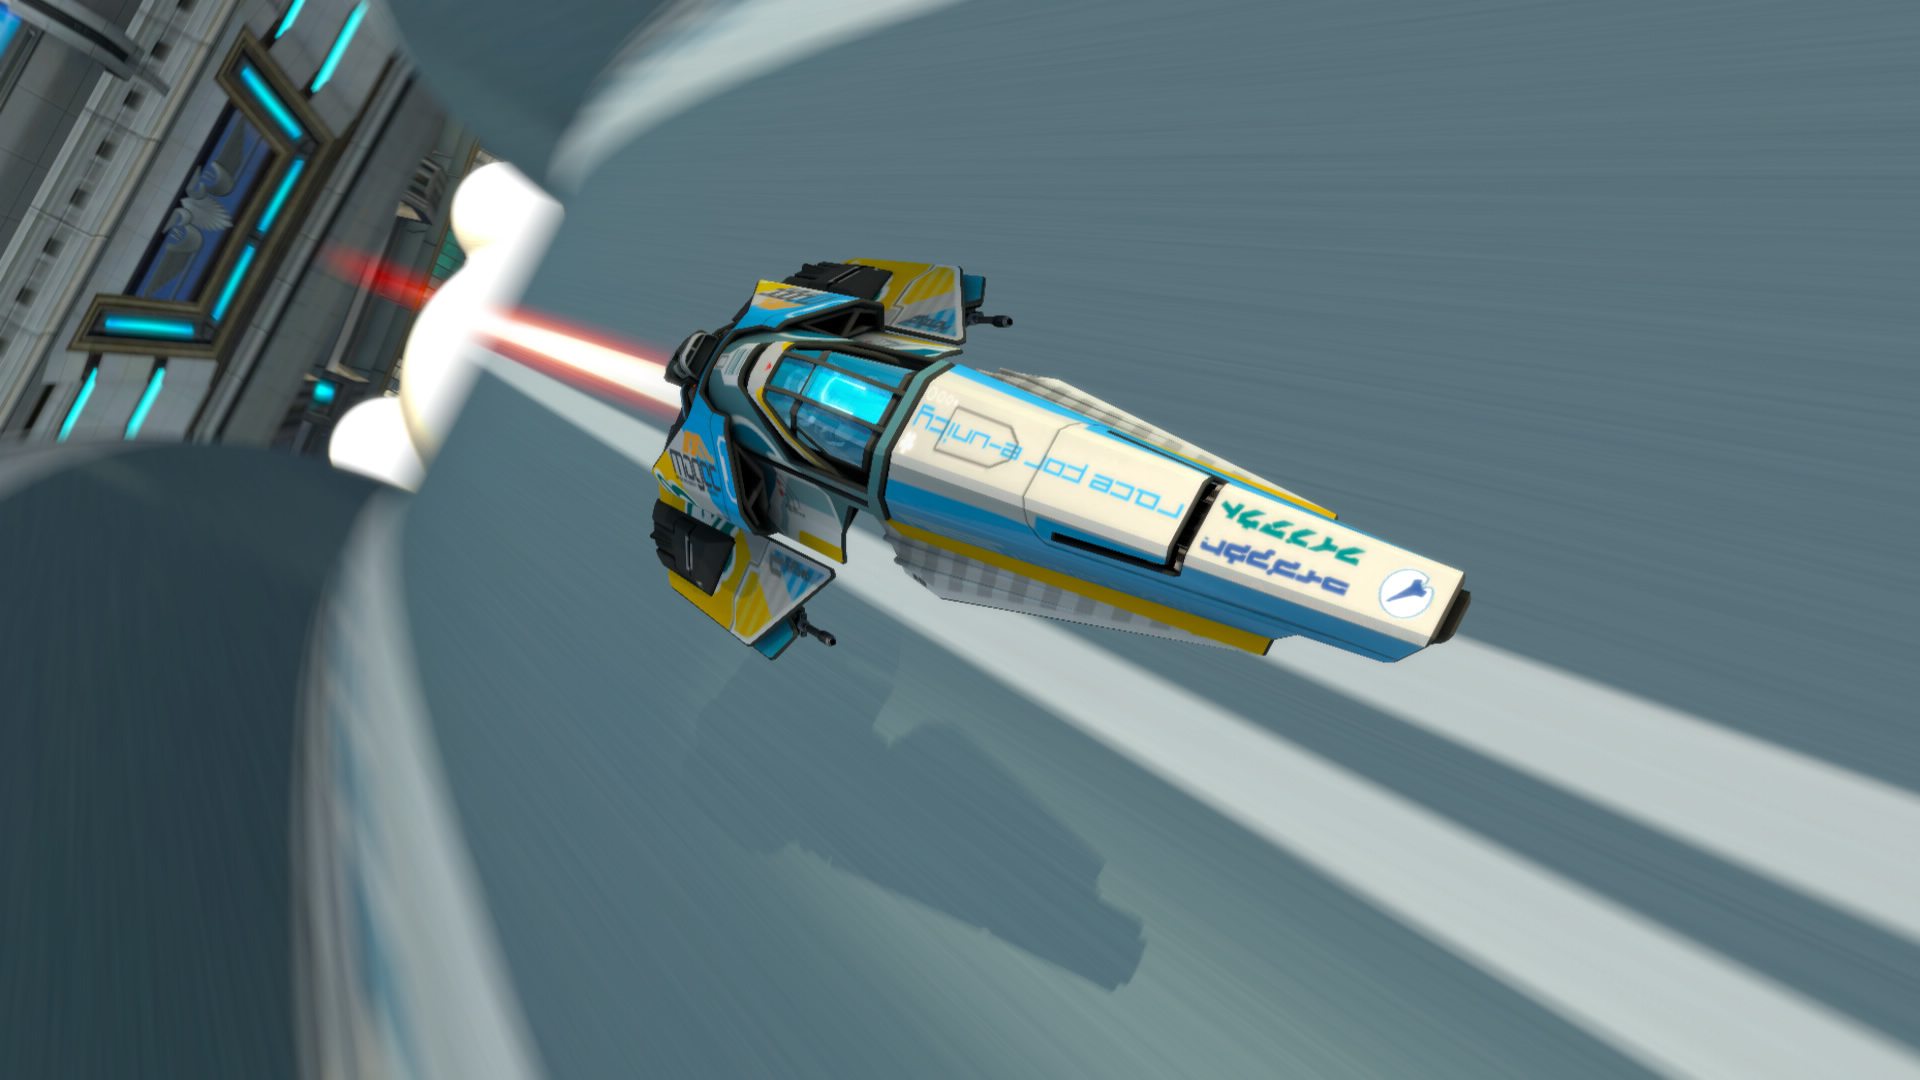 Quantum Levitation Racing Wipeout Videogame Made Real HD Wallpapers Download free images and photos [musssic.tk]